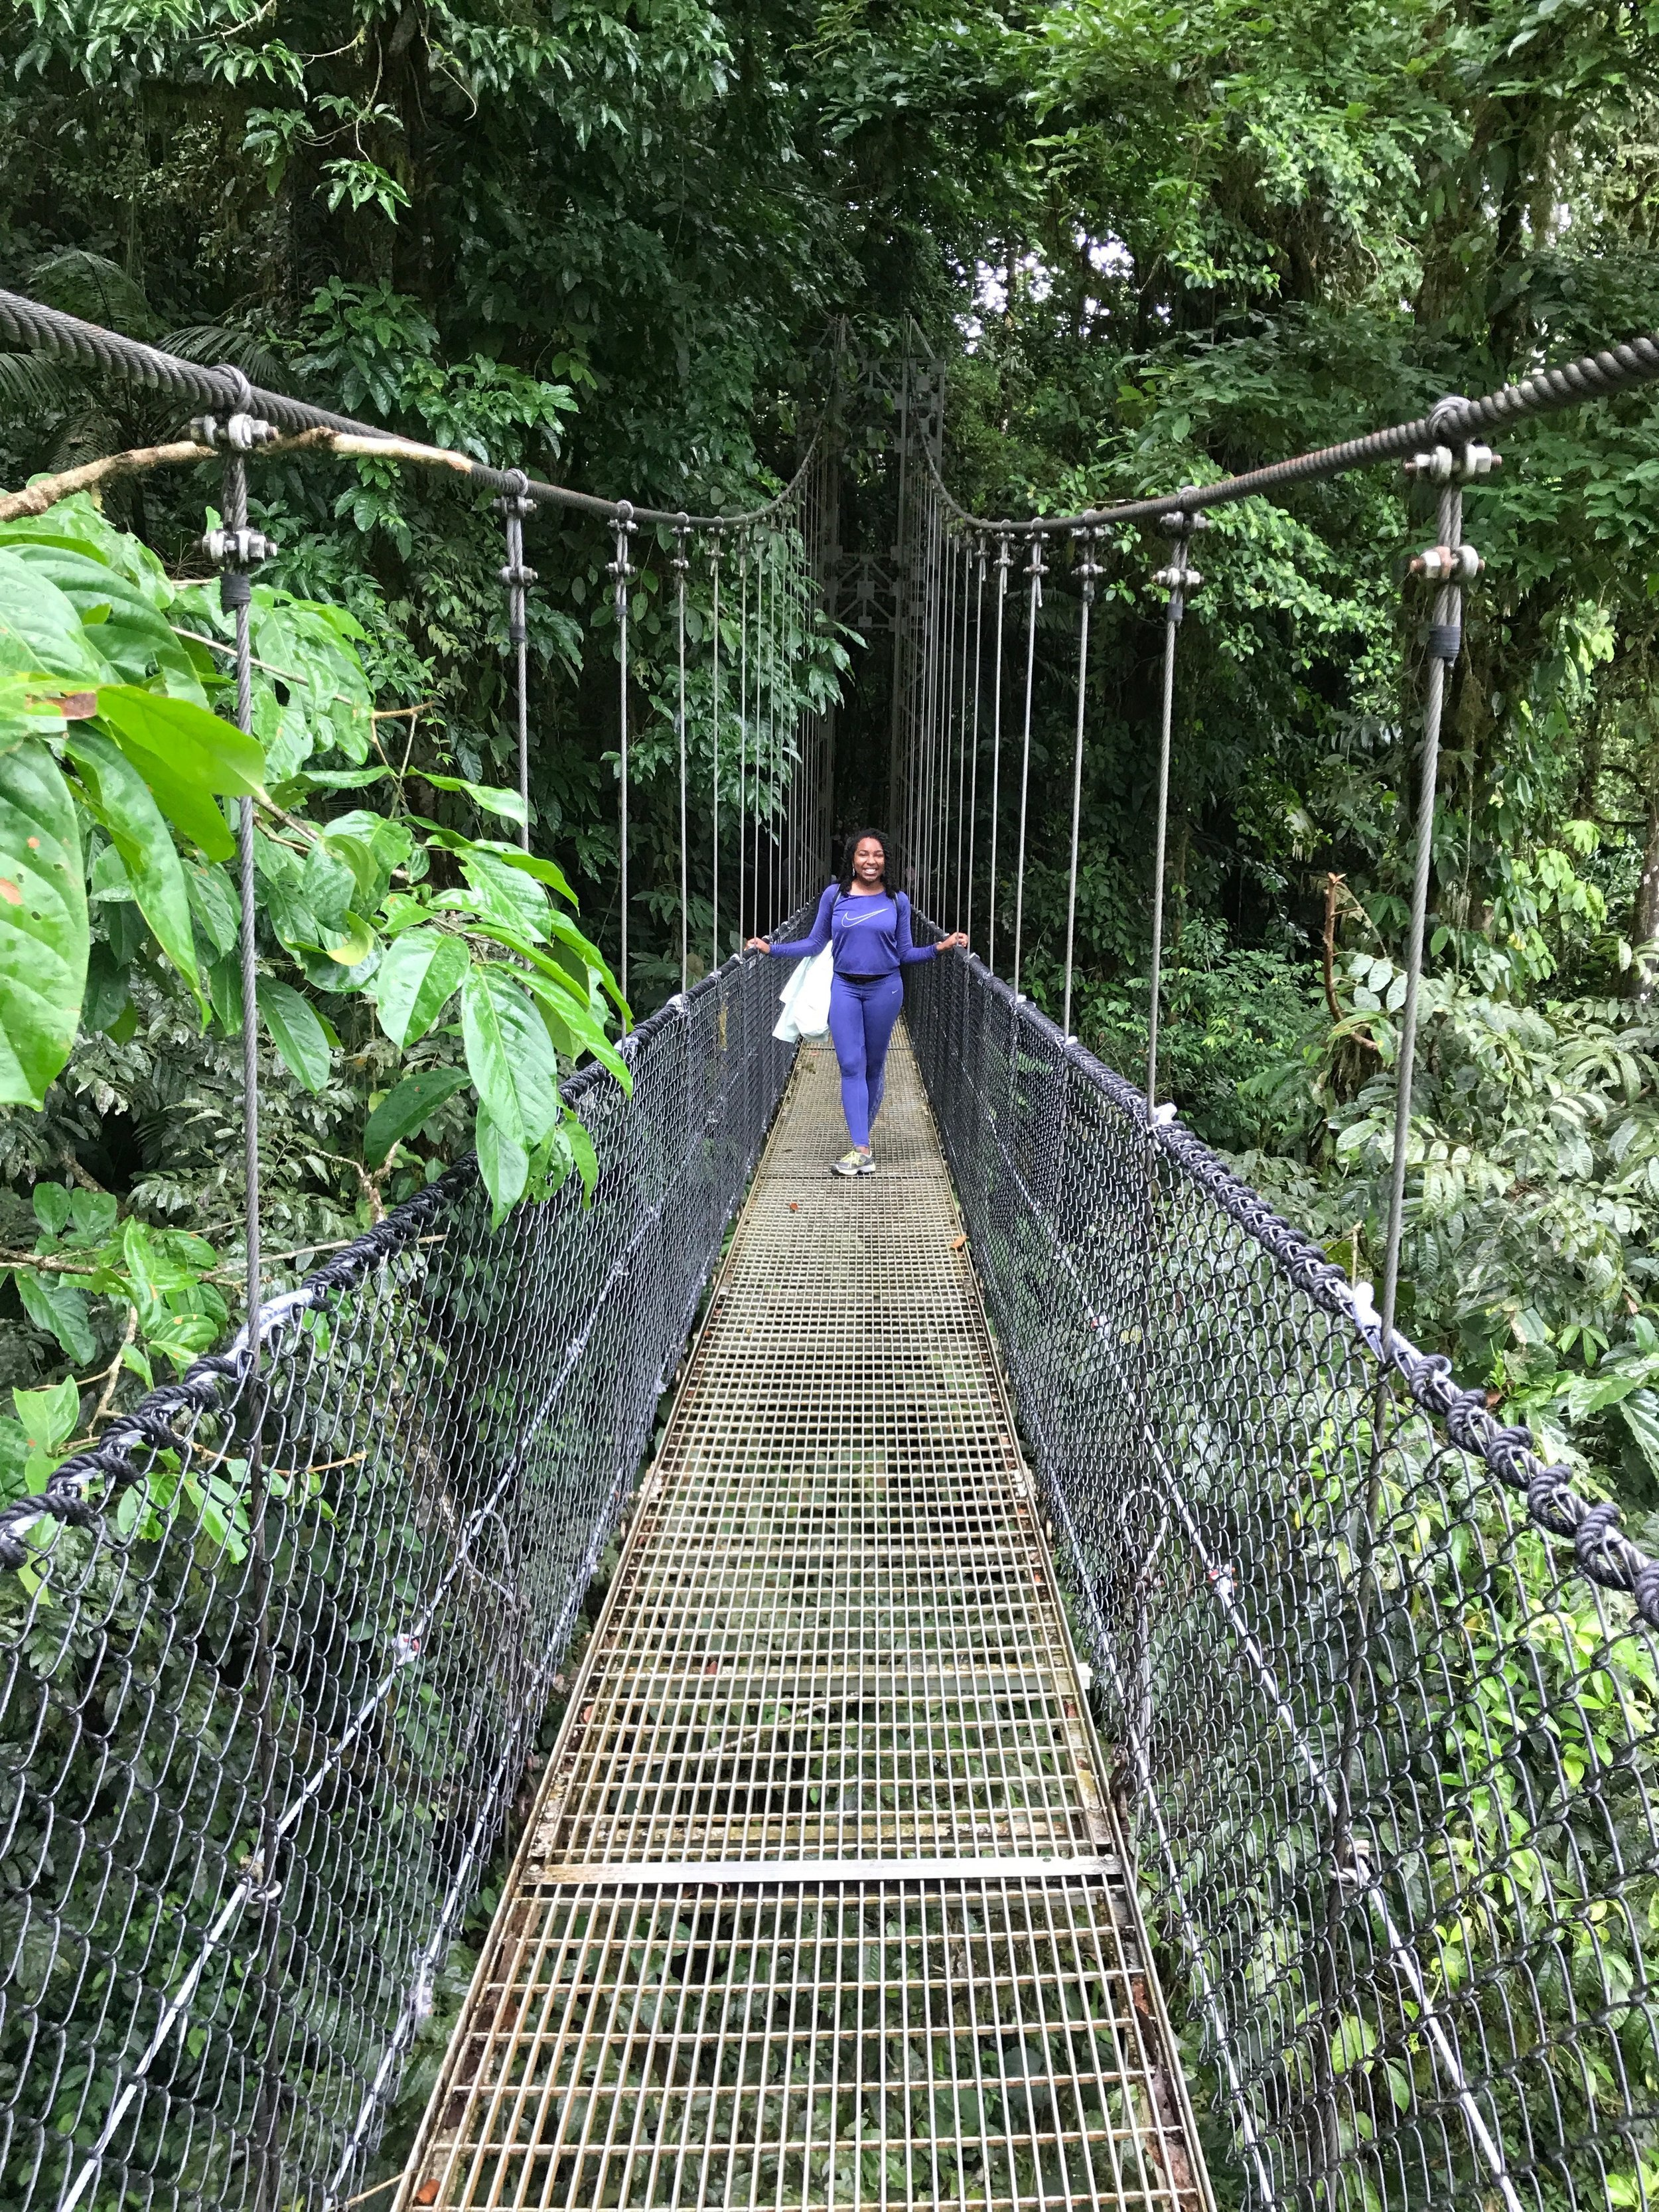 Crossing a hanging bridge more than 120 feet above the rainforest floor in the Arenal Volcano National Park in La Fortuna, Costa Rica. The views of the volcano and rainforest canopy were spectacular.